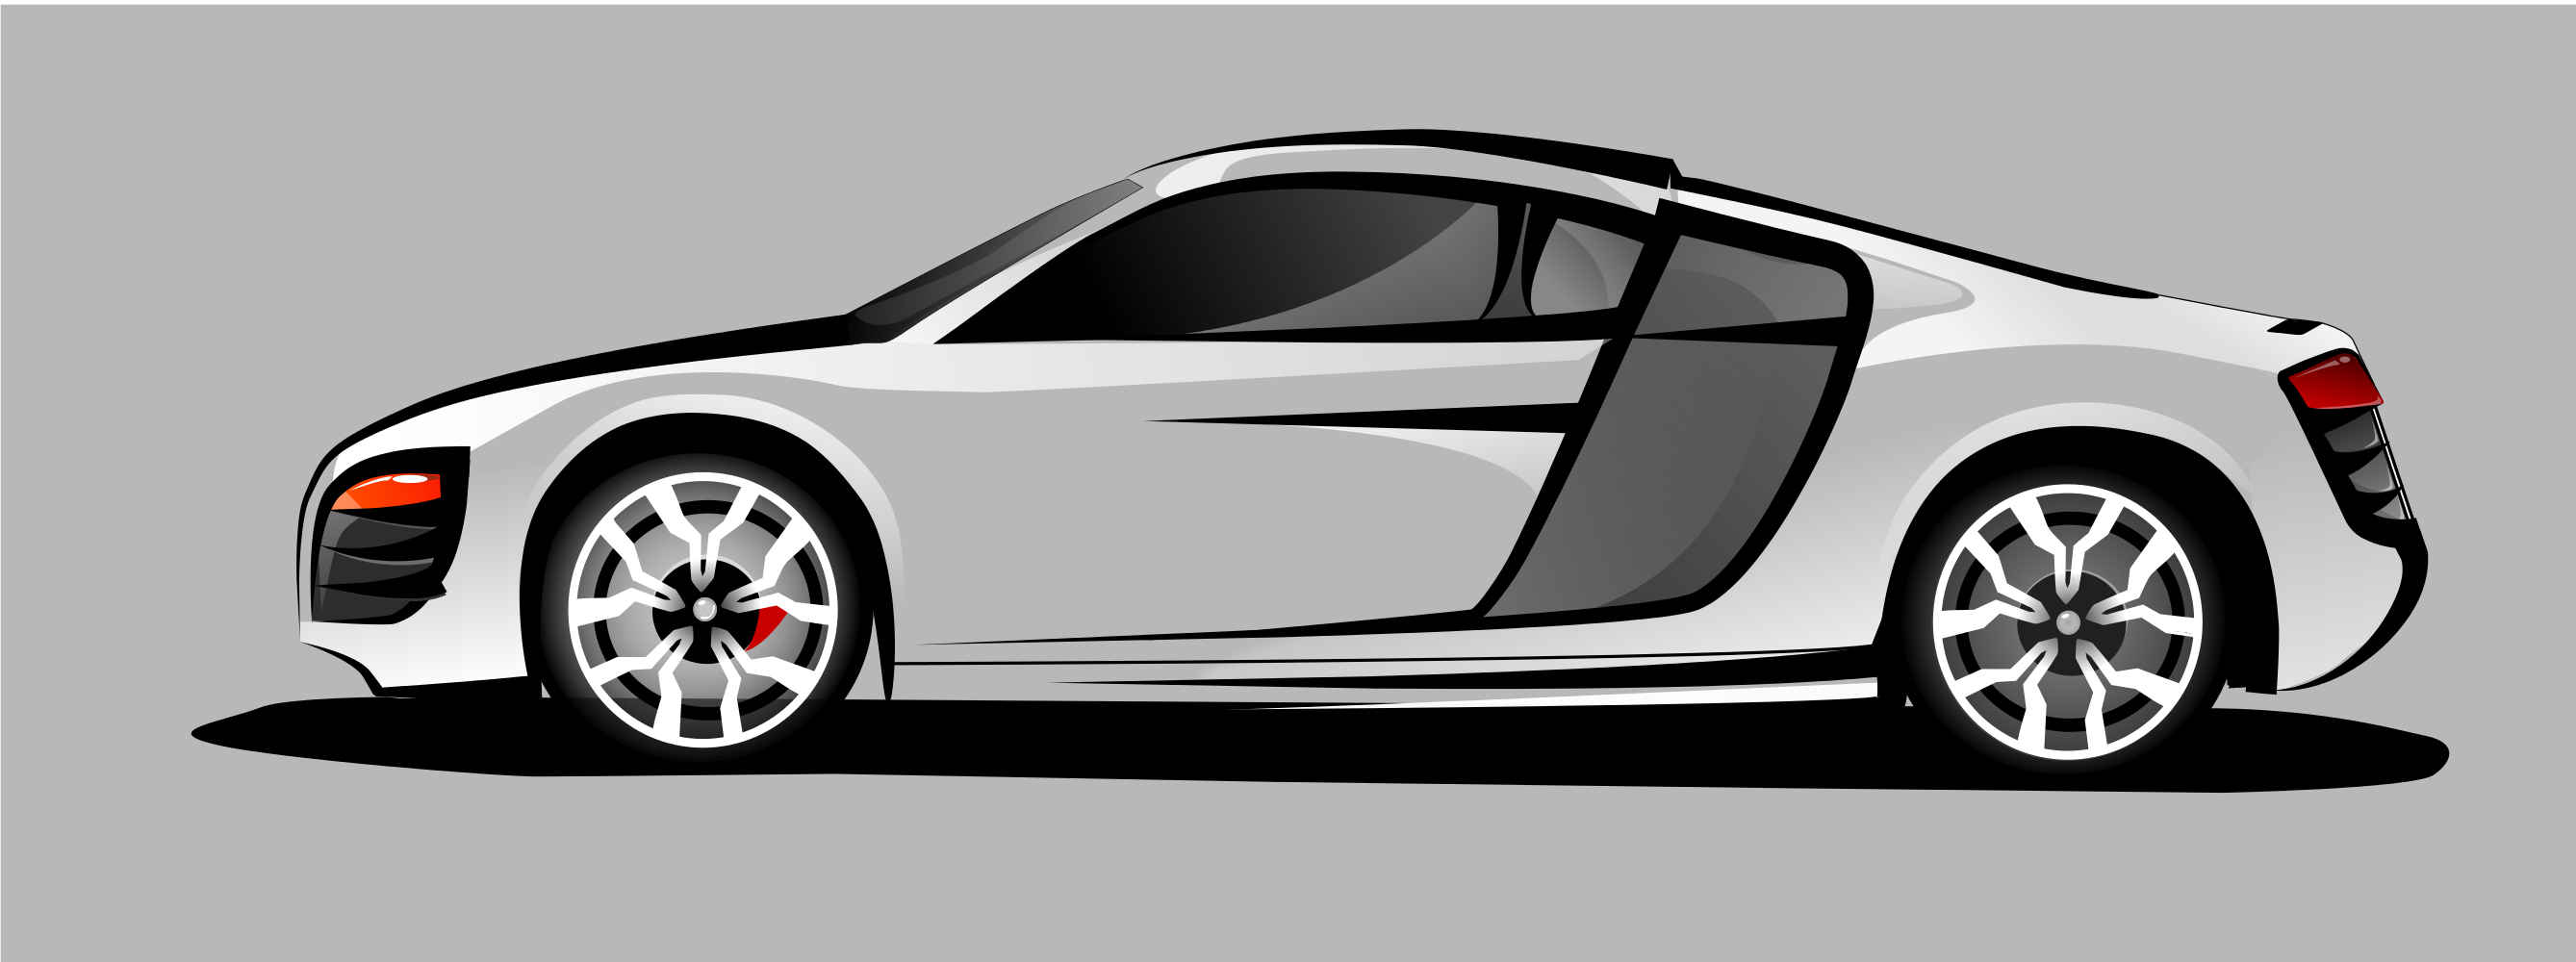 Audi r8 clipart png freeuse stock 100+ Audi Clipart | ClipartLook png freeuse stock